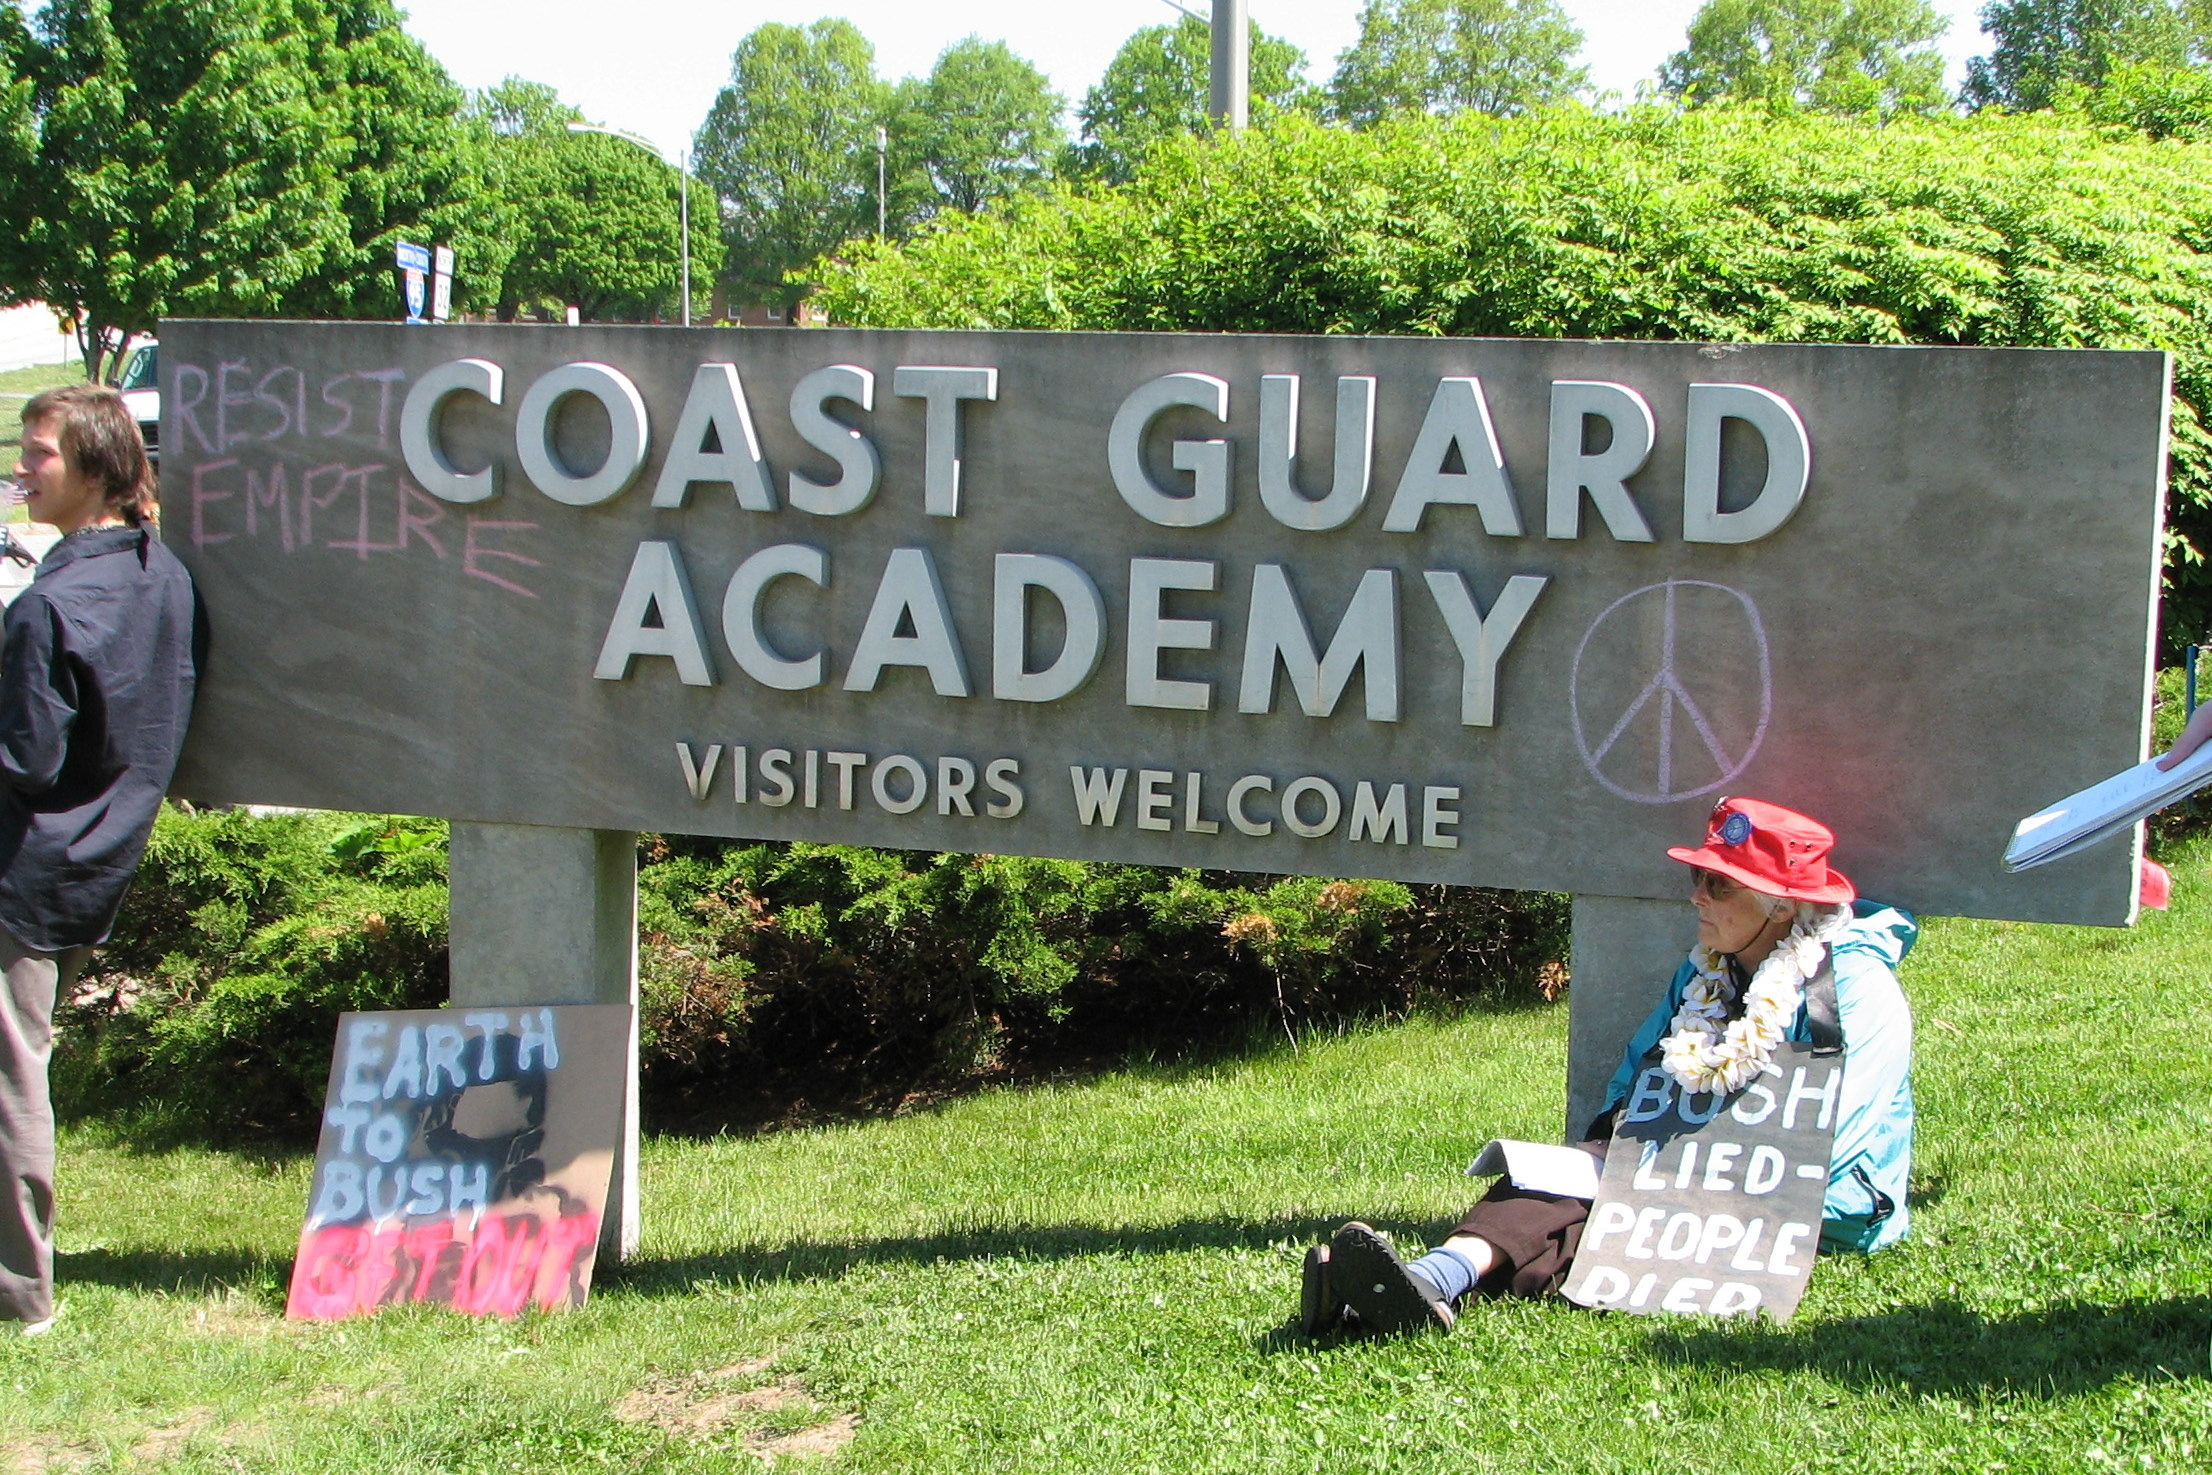 coast guard academy entrance essay Us coast guard academy admissions analysis and profile for prospective applicants who want to be fully prepared to maximize their admissions chances.